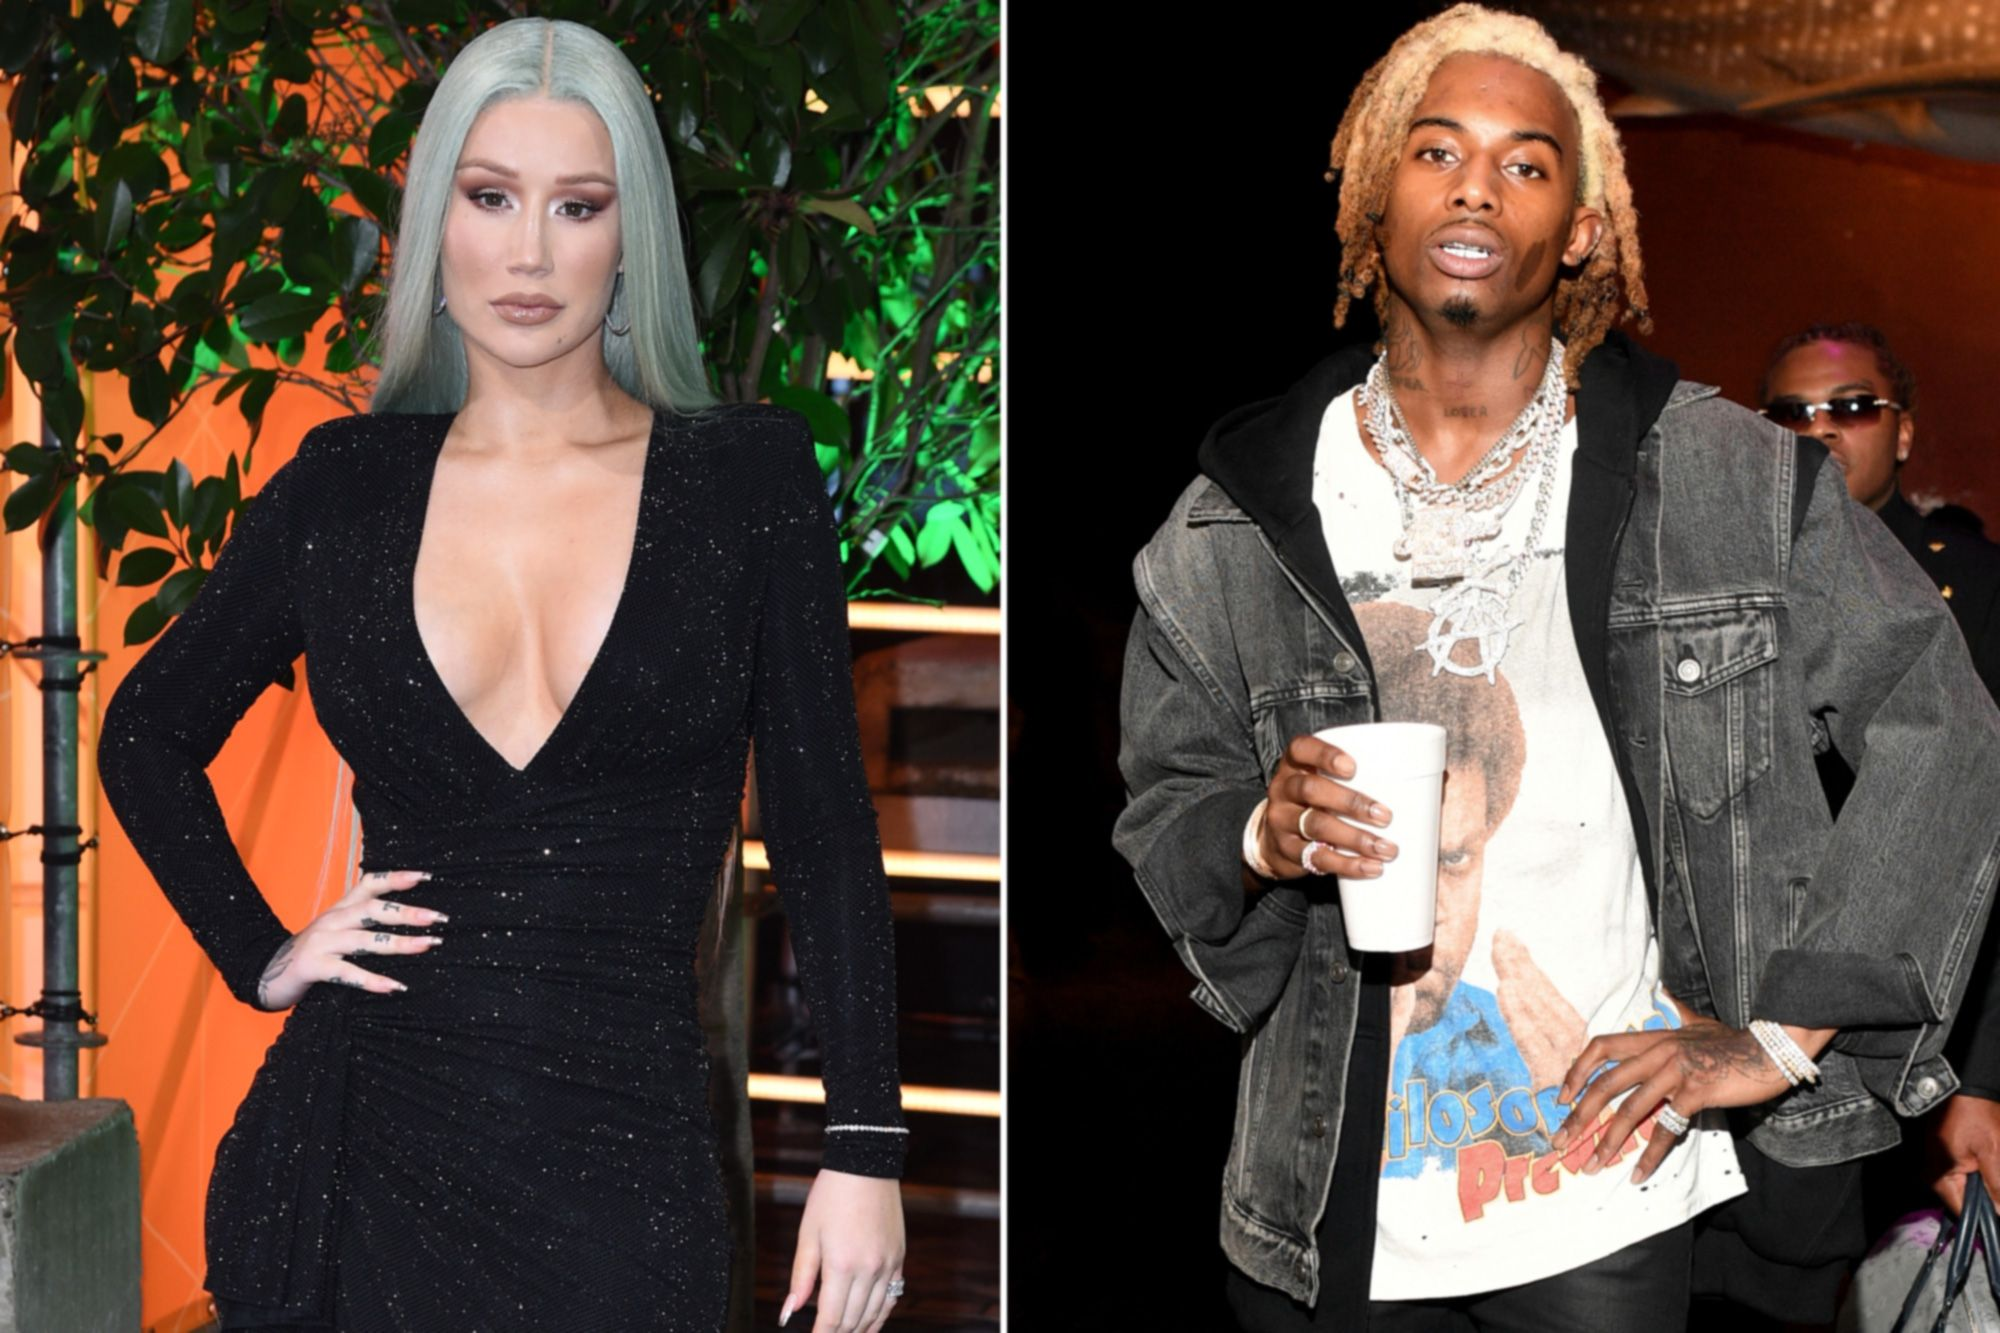 Iggy Azalea – Is She Ready To Date Again After Split From Baby Daddy Playboi Carti?